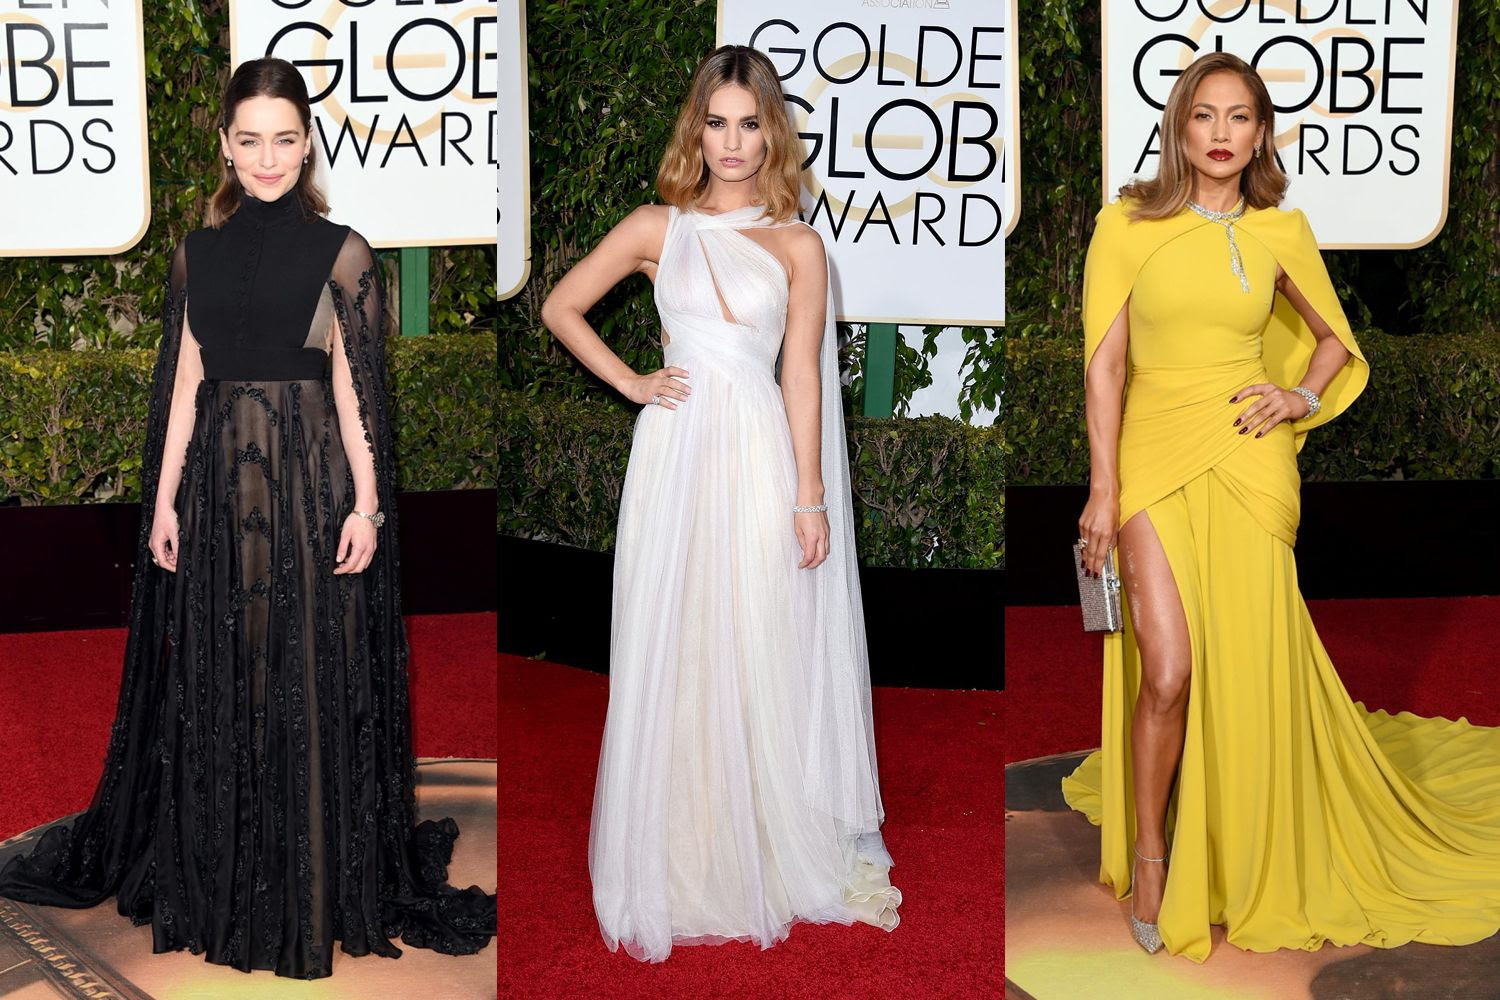 photo golden globes16 cape trend_zpsotulgejq.jpg